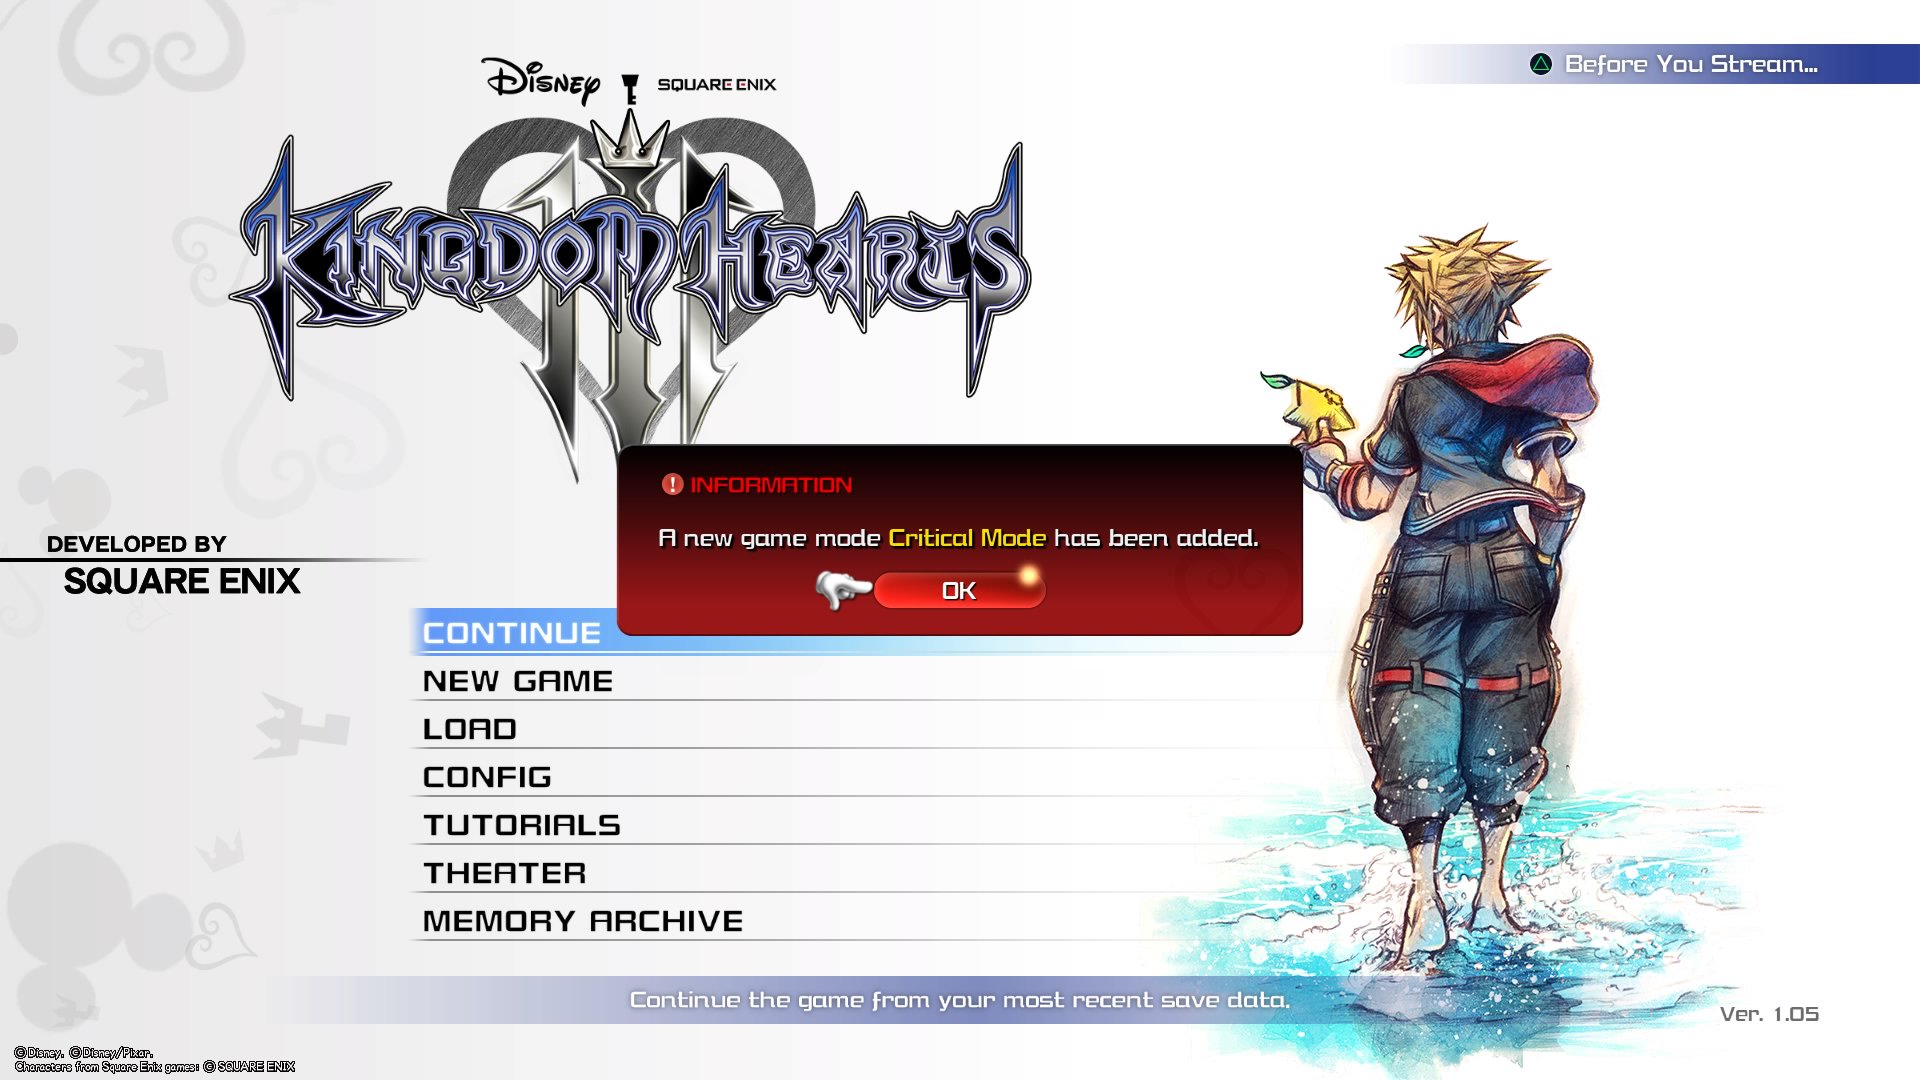 Kingdom Hearts III Critical Mode and New Game Plus updates